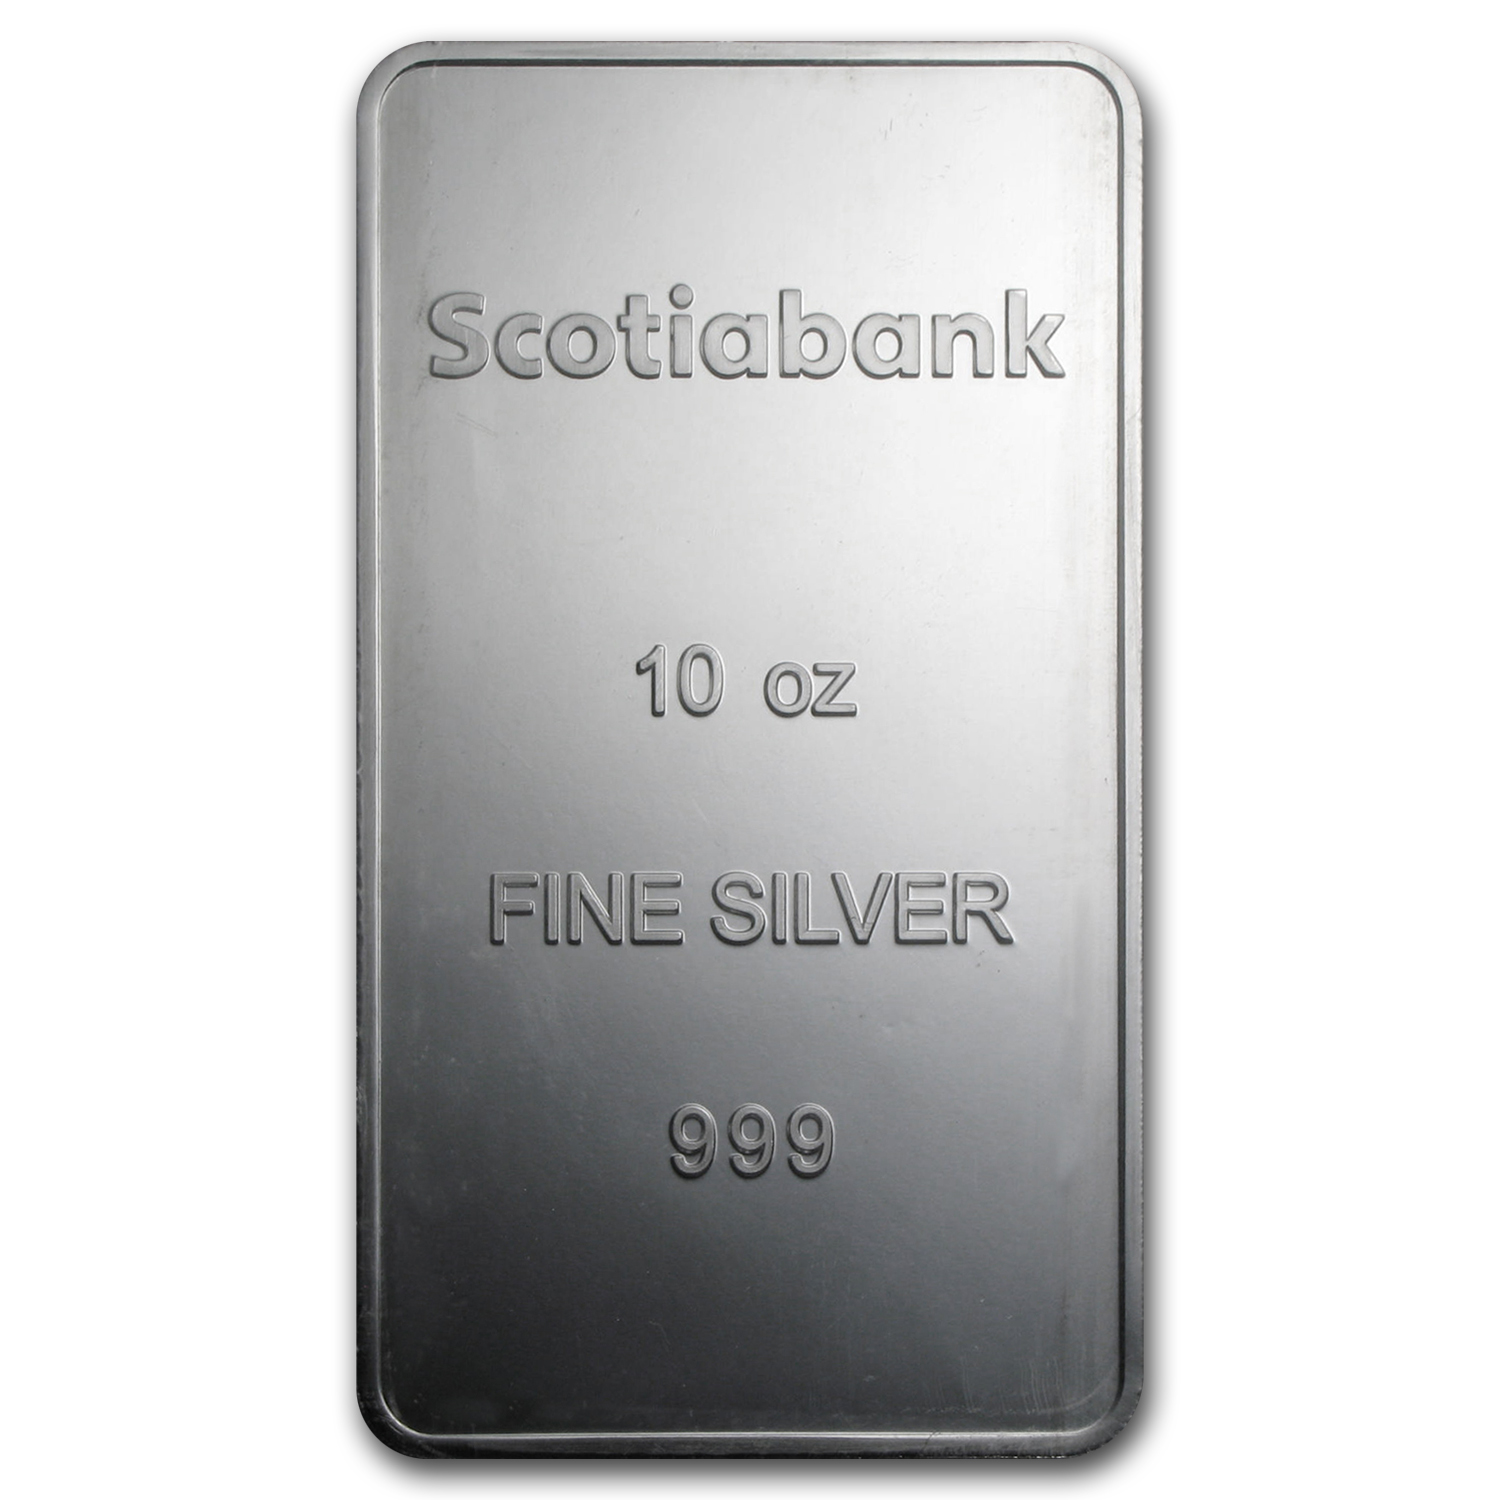 10 oz Silver Bar - Scotiabank